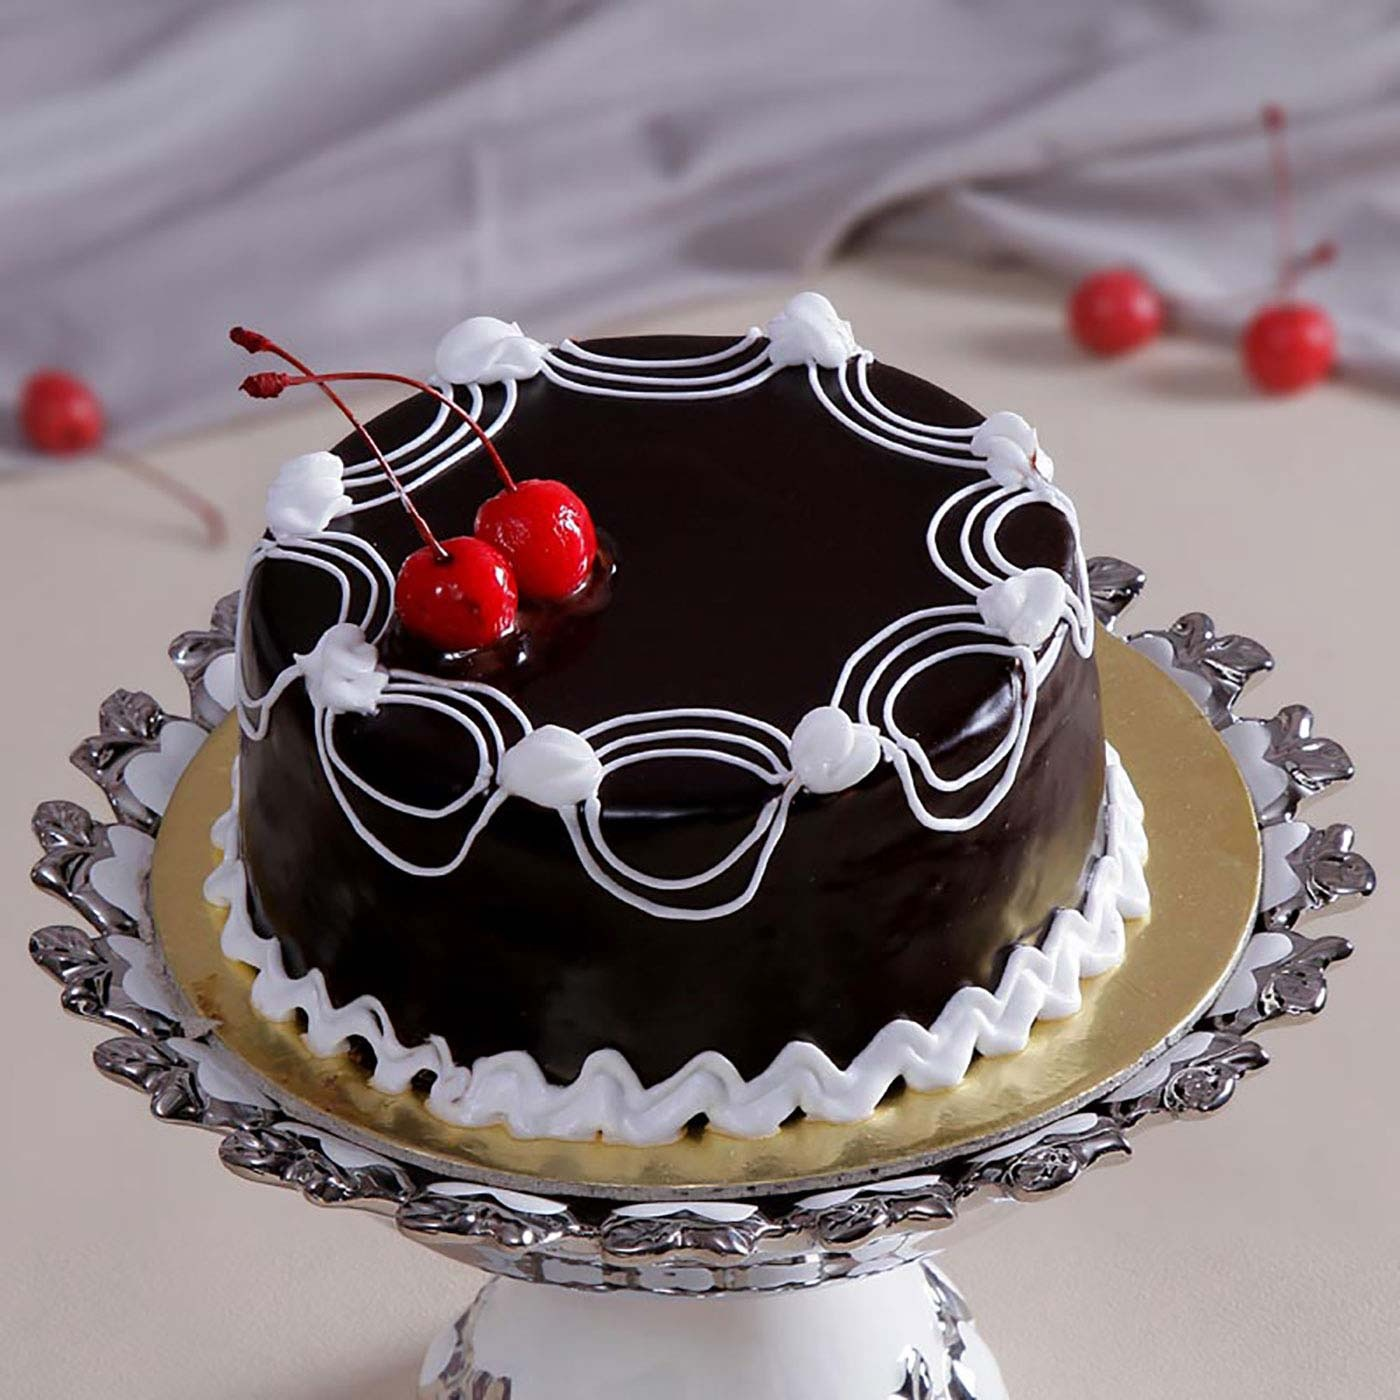 Singapore New Zealand Canada And The US Our Fully Connected Global Network Forms Basis Of Seamless Cake Delivery In Or Other Nations